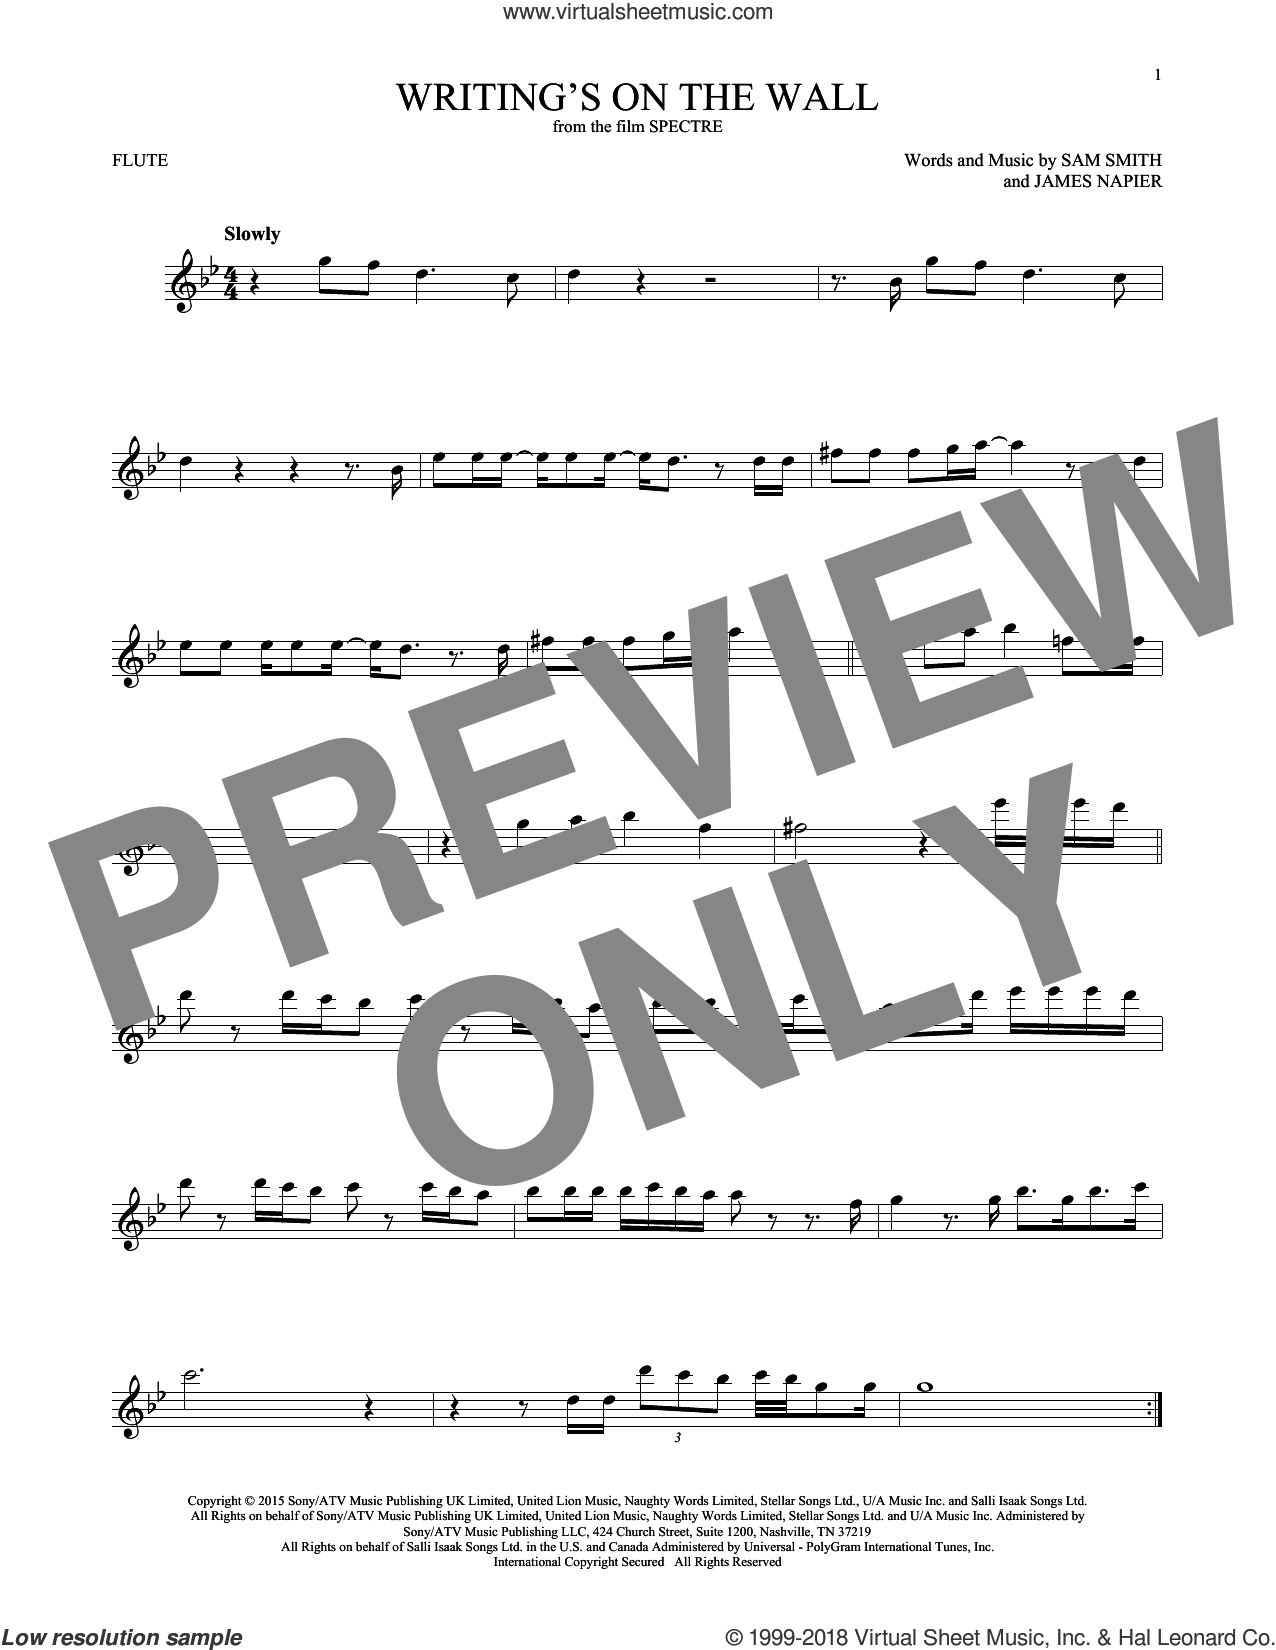 Writing's On The Wall sheet music for flute solo by Sam Smith and James Napier, intermediate skill level